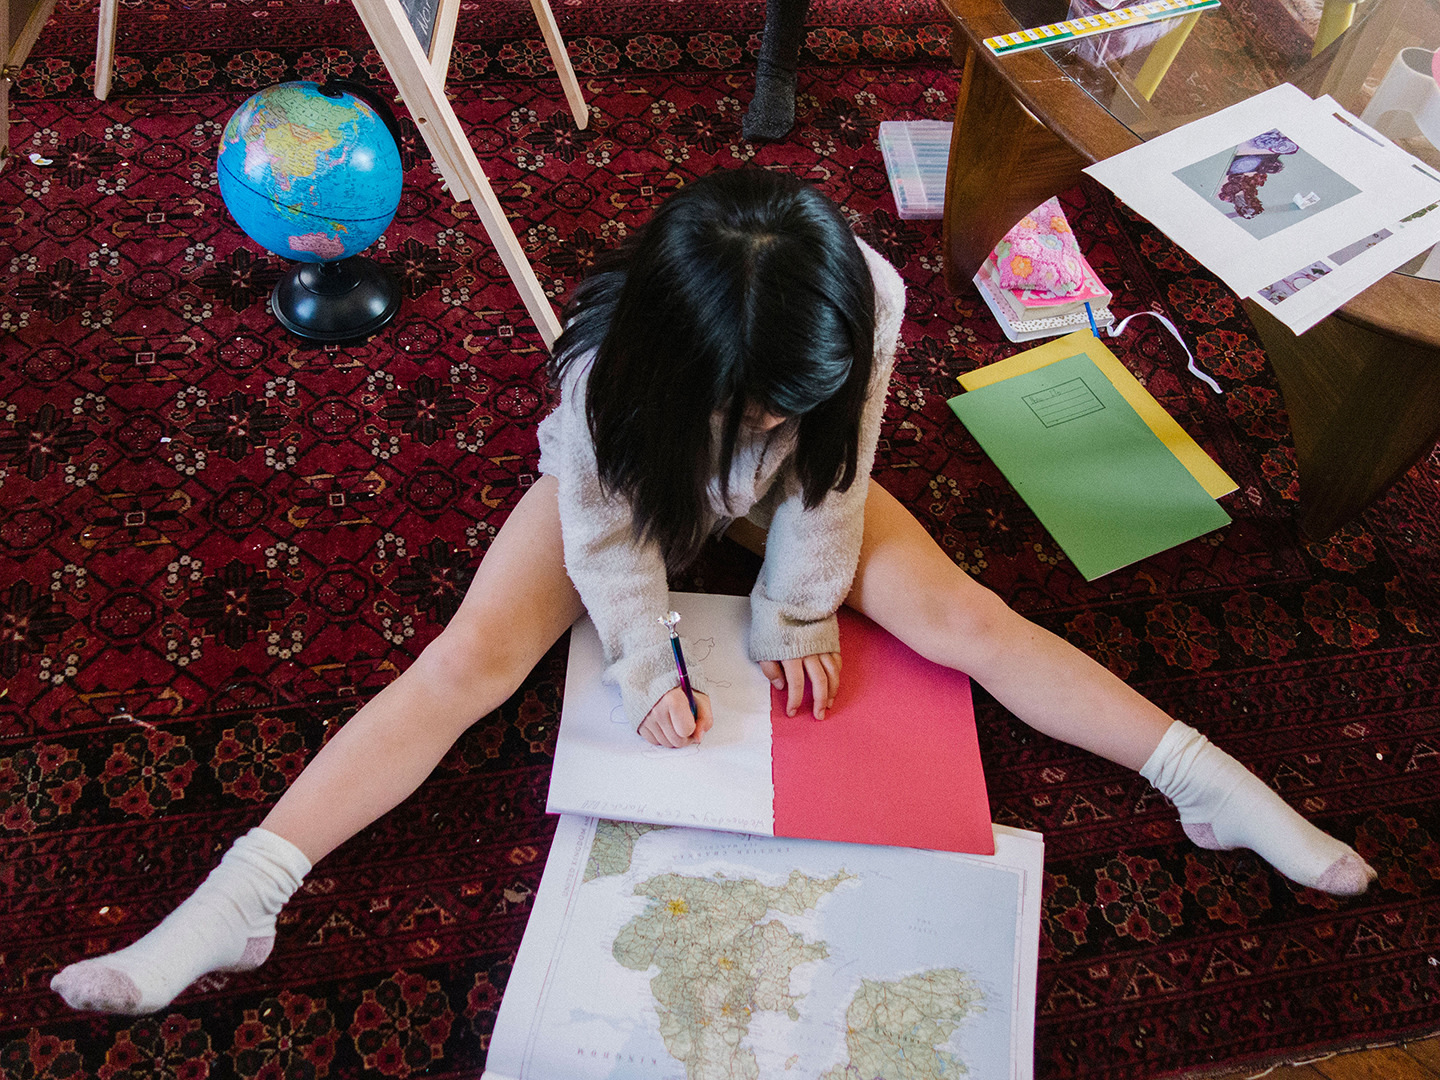 a young girl sitting on the floor with homework and a map